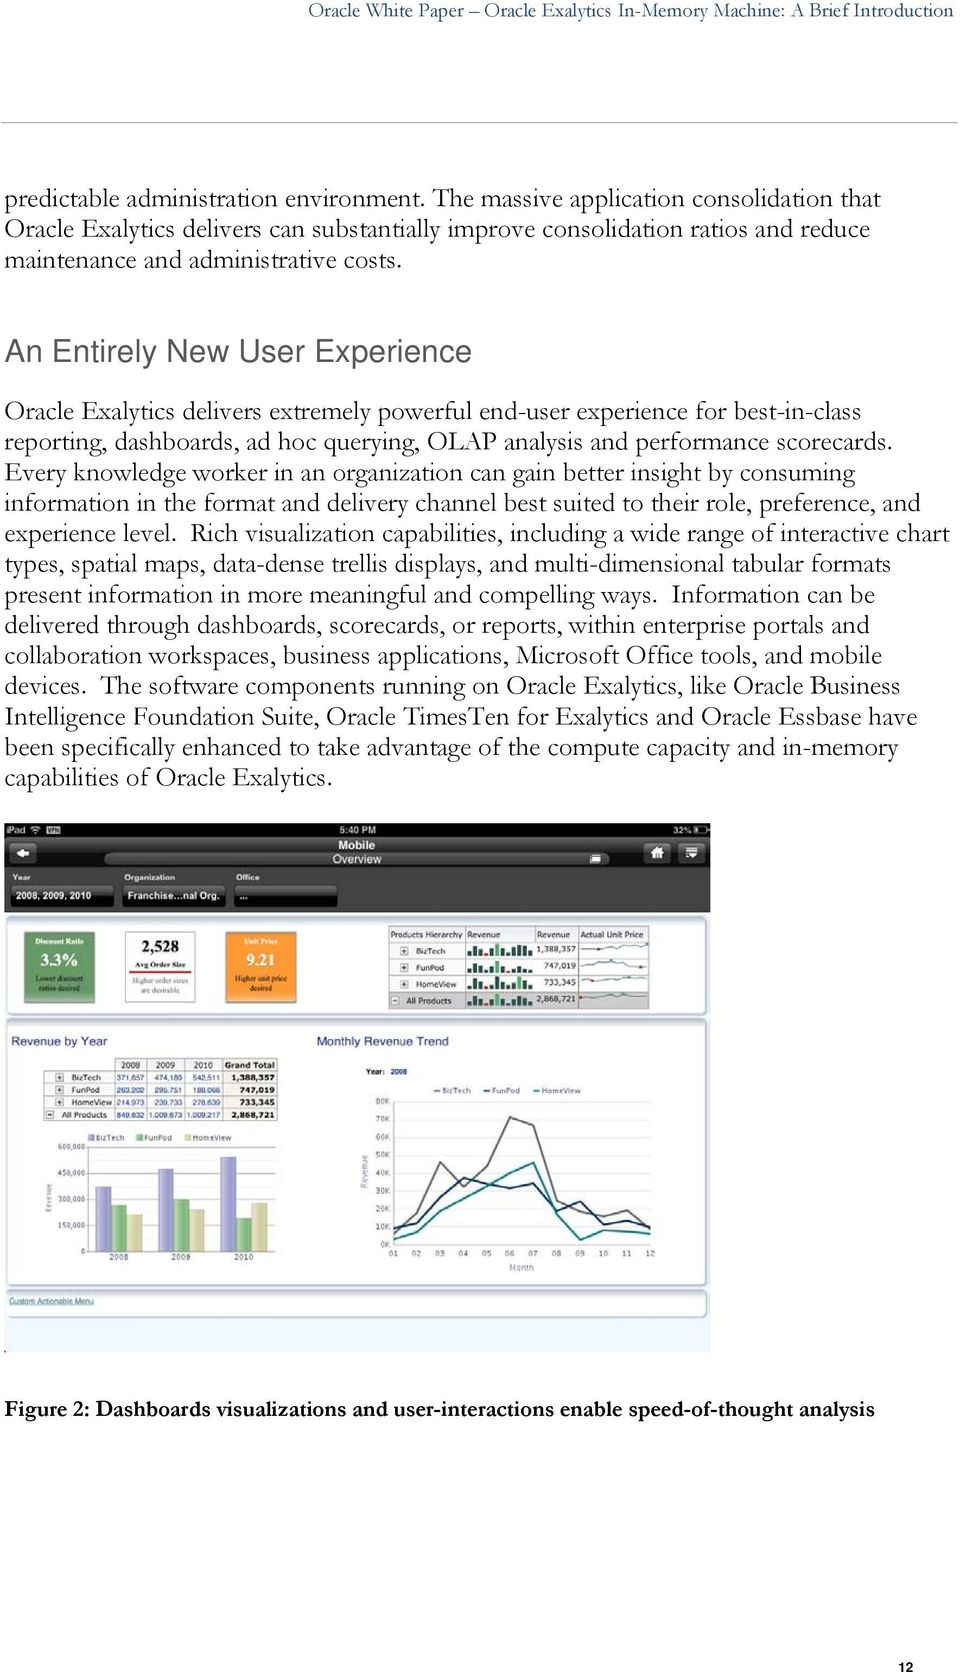 An Entirely New User Experience Oracle Exalytics delivers extremely powerful end-user experience for best-in-class reporting, dashboards, ad hoc querying, OLAP analysis and performance scorecards.